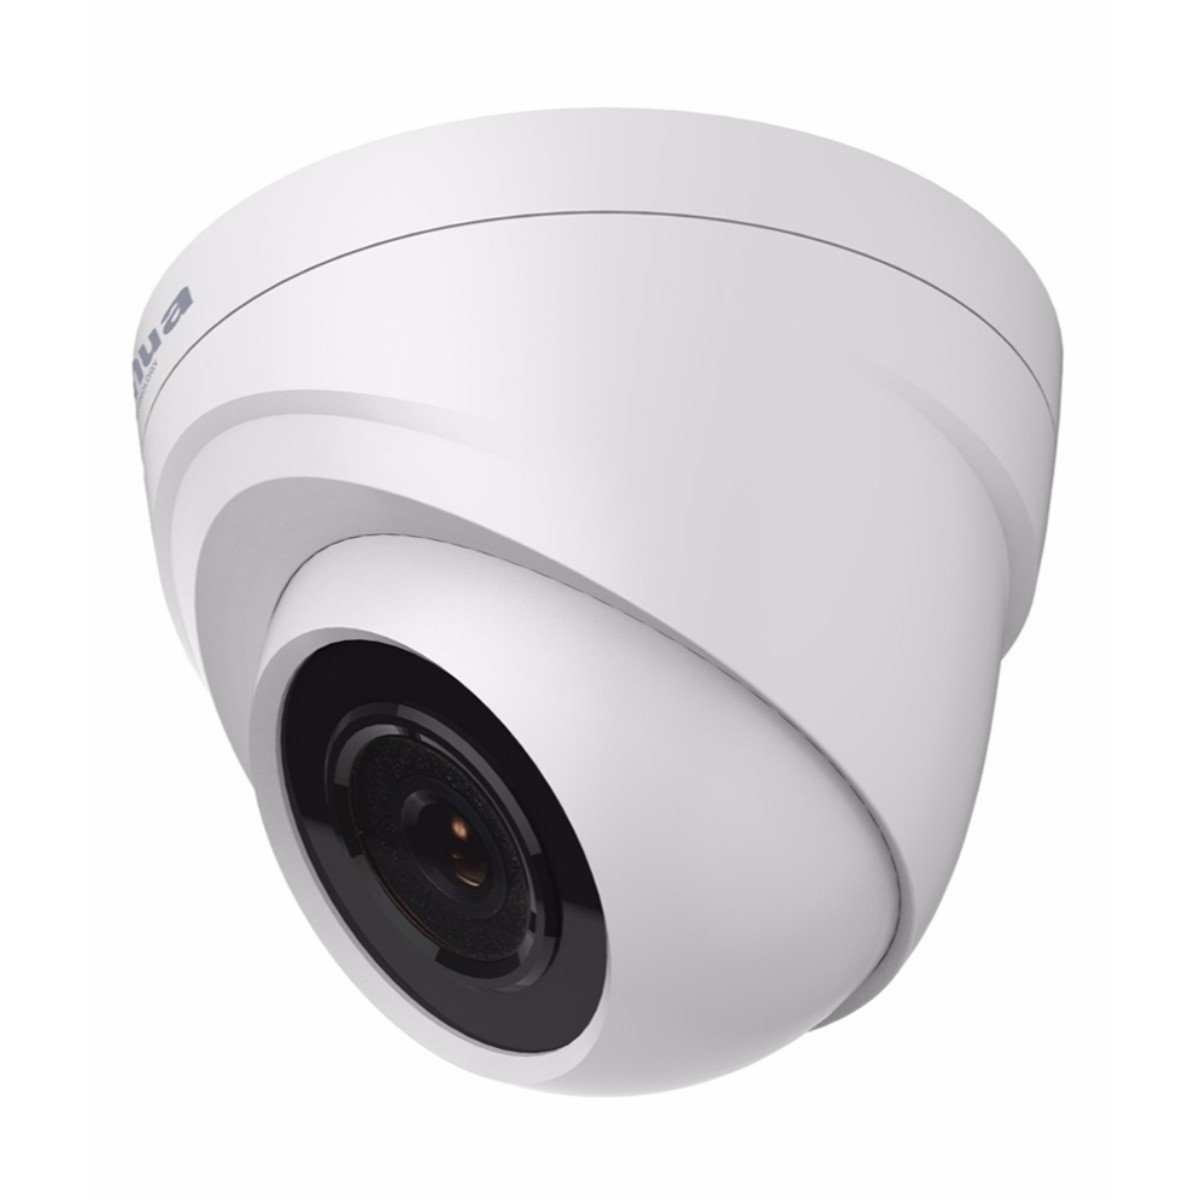 Dahua DH-HAC-HDW1220SP HD Dome 2MP Full HD 1080P Indoor Camera